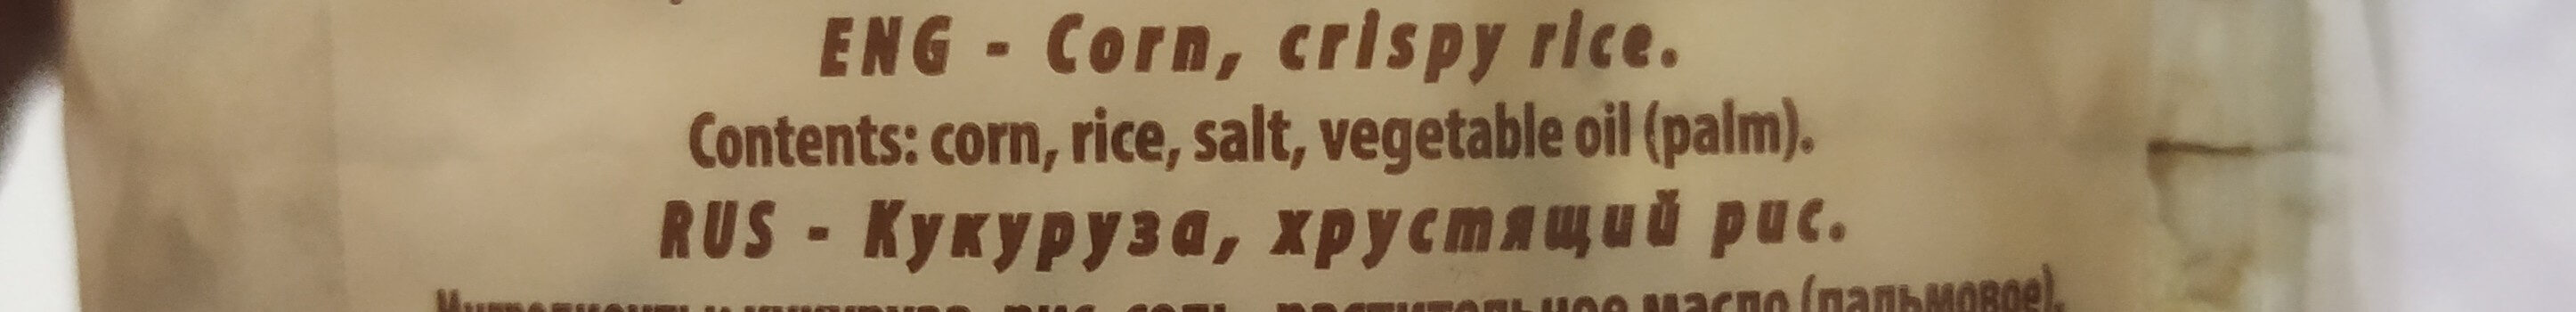 misir pirinc - Ingredients